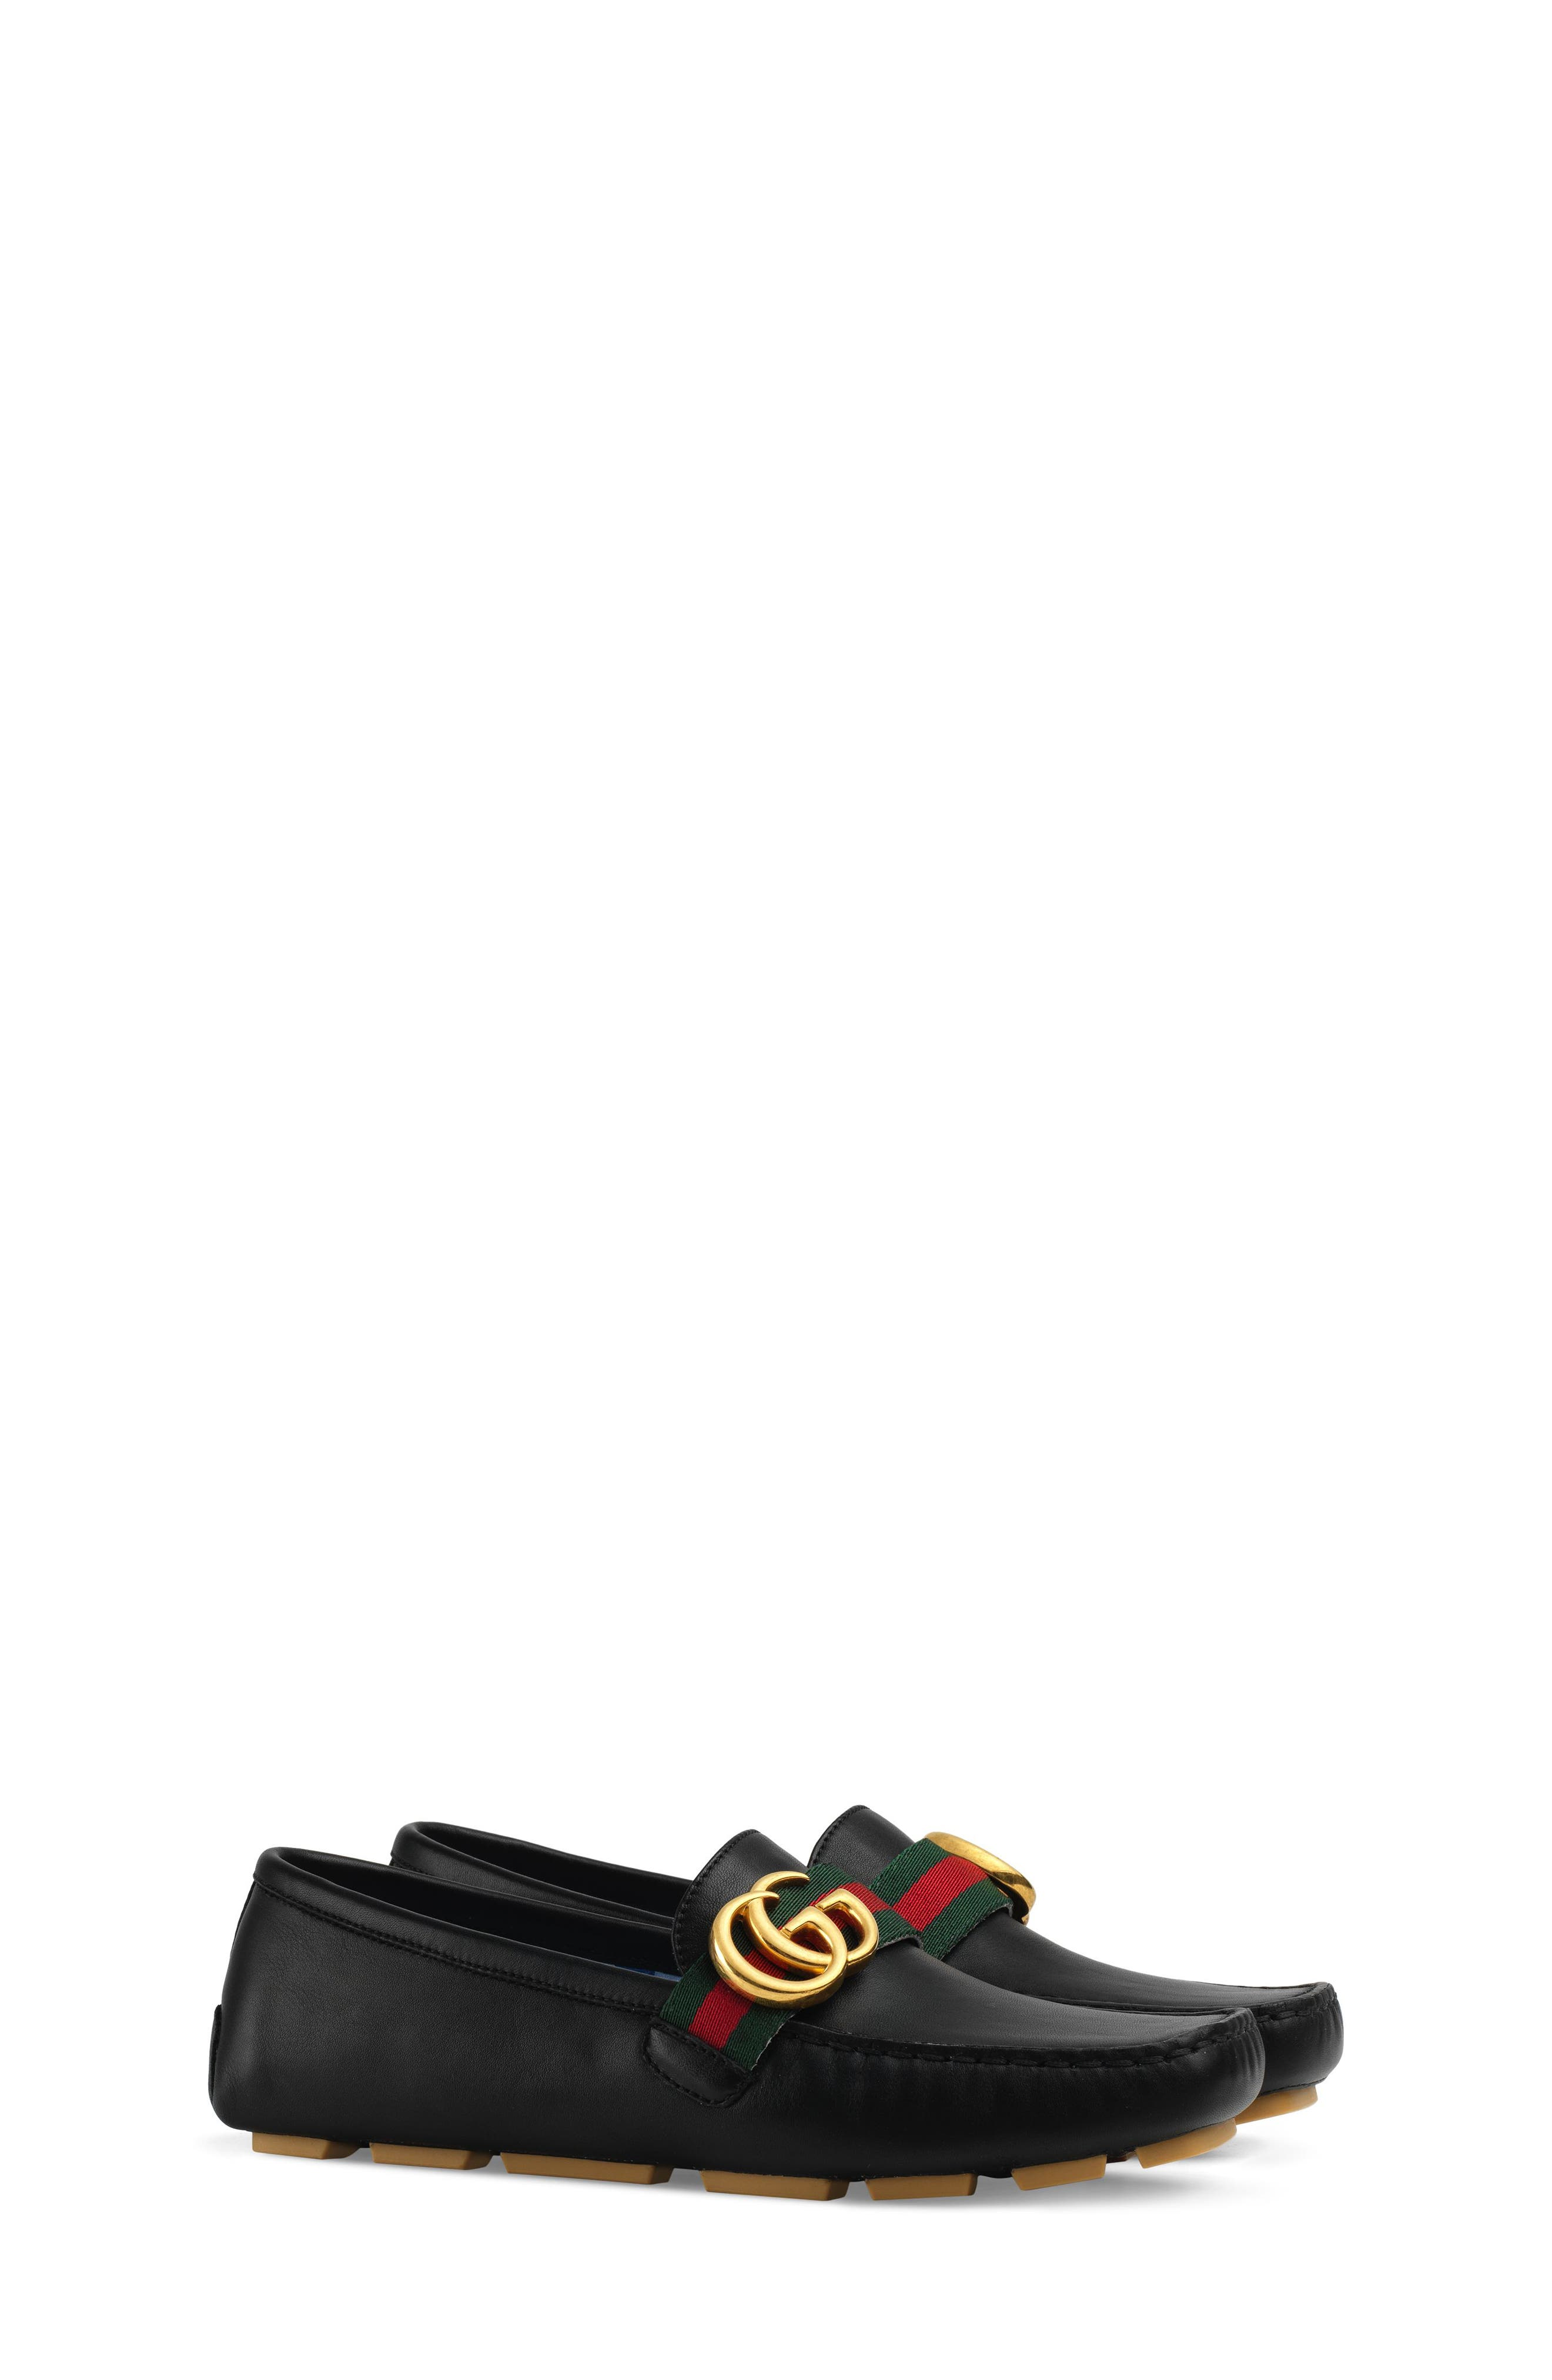 GUCCI, Noel Driving Loafer, Main thumbnail 1, color, BLACK